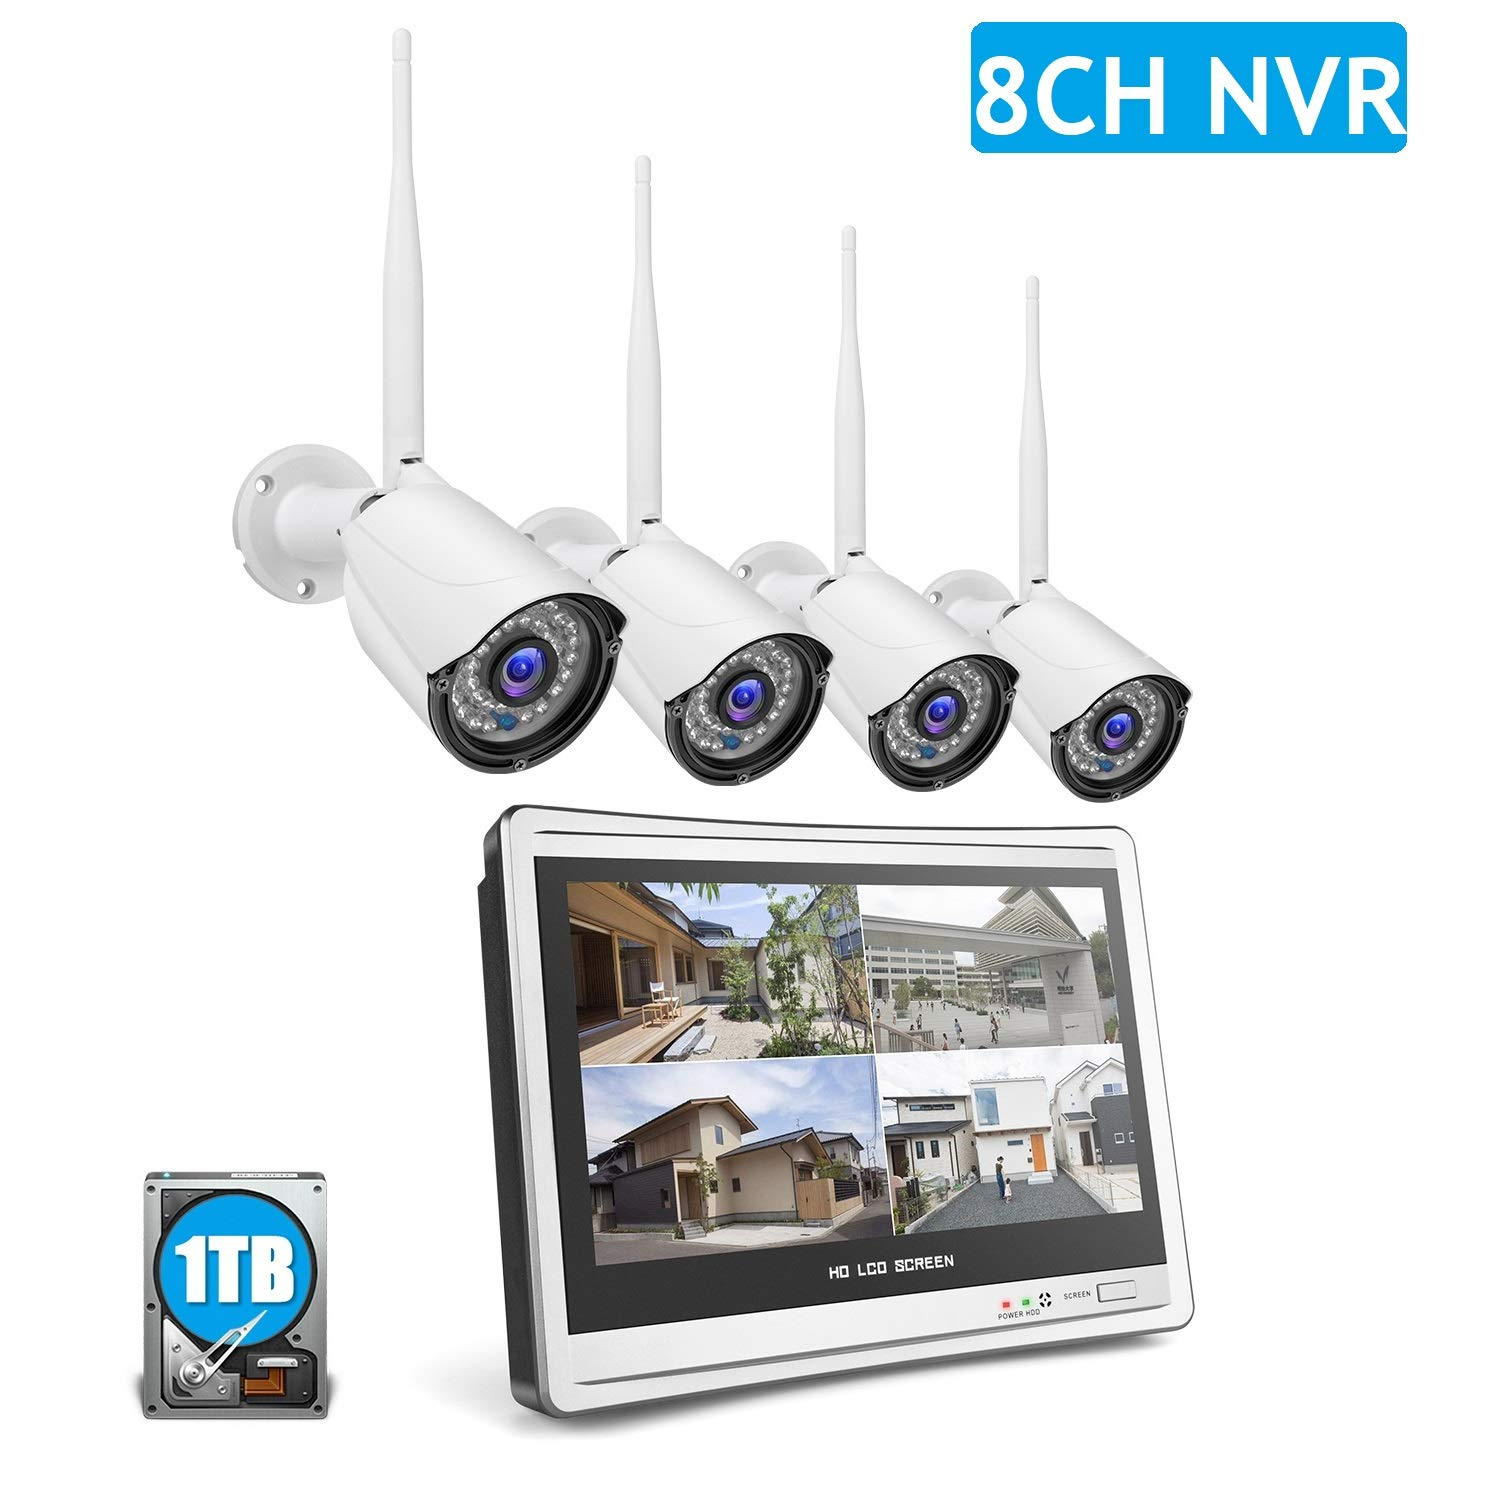 8ch Security Camera System, 12.5 inches LCD Display with 8 Channels Wireless Security System and 4Pcs 1080P indoor outdoor Wireless Weatherproof cameras, P2P, IR Night Vision, Plug and Play, 1TB HDD by Helenvision